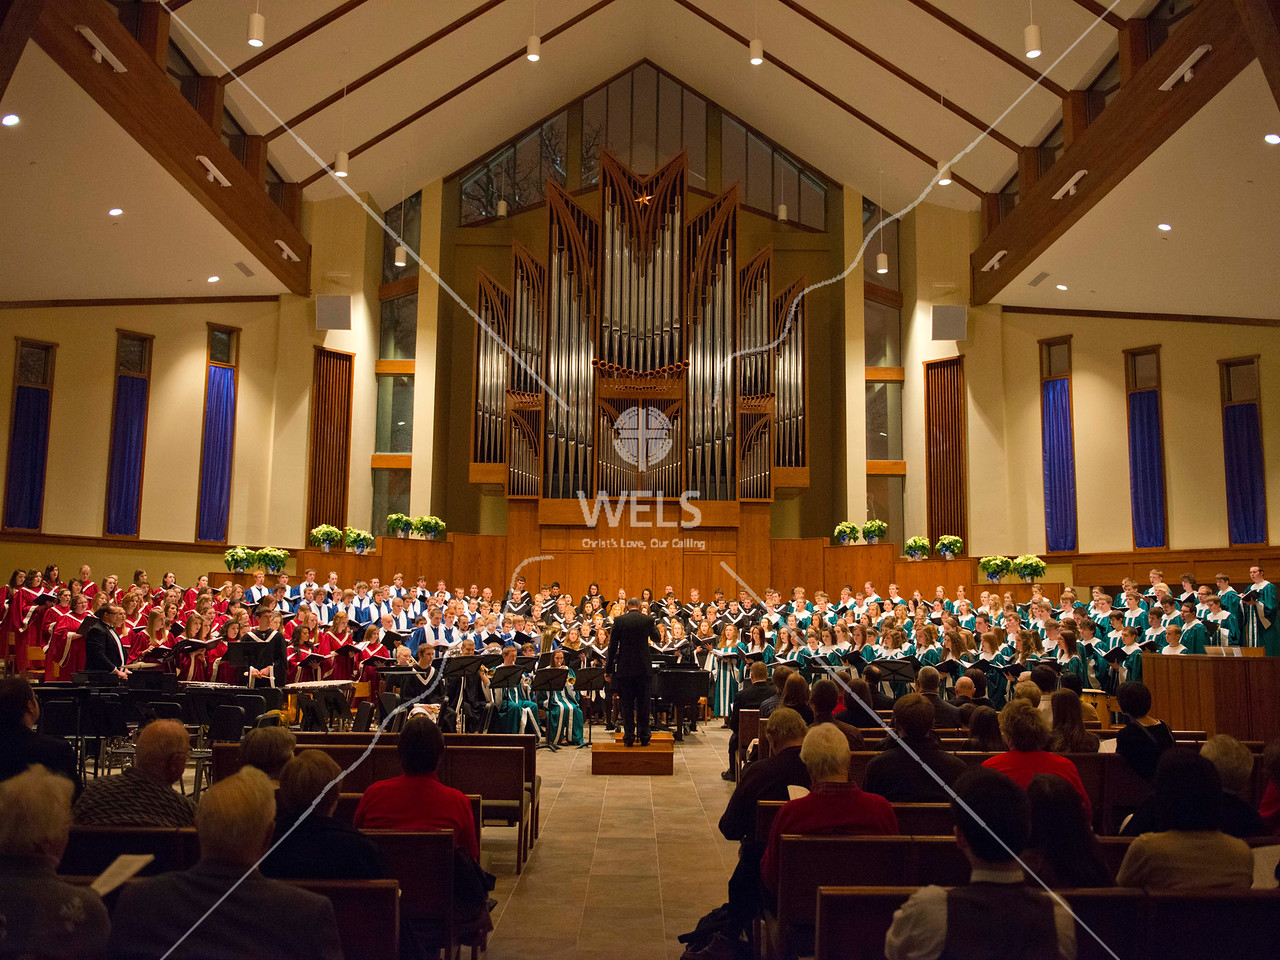 Chapel of the Christ Choral Concert by wpekrul